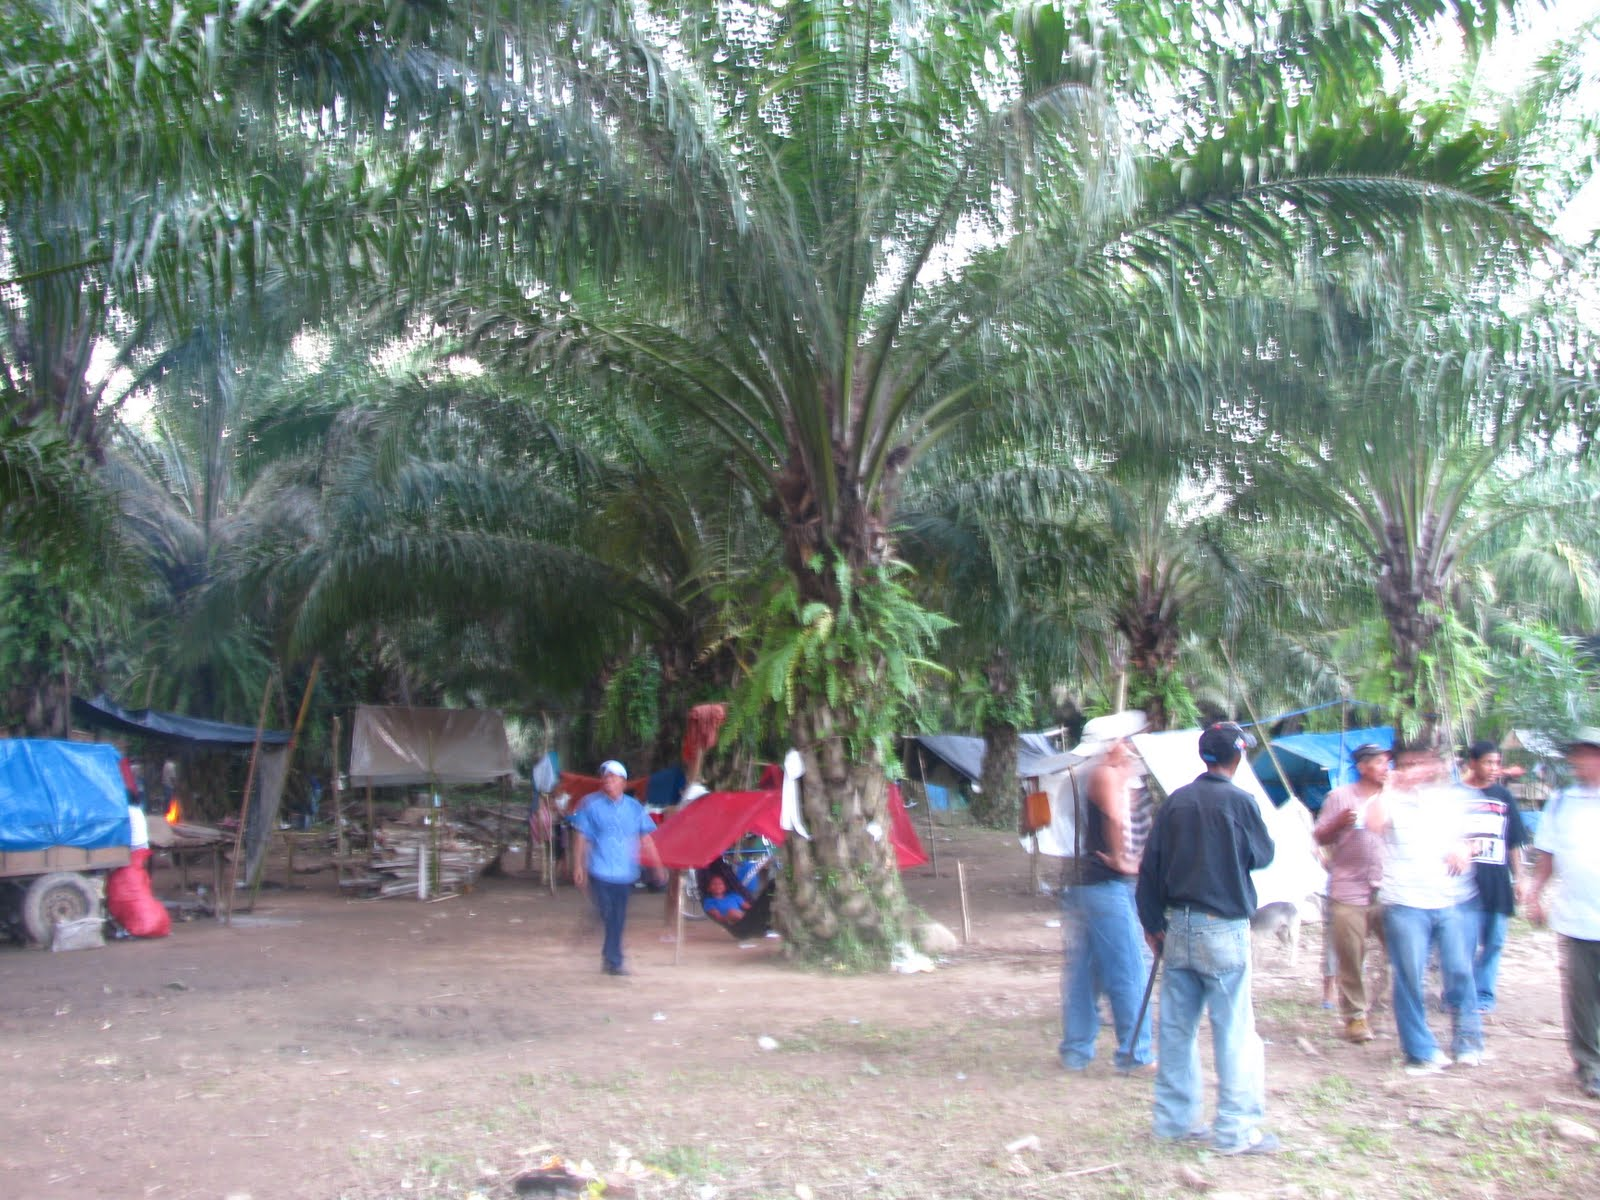 After 13 days and getting ready for more, they have built shelters and set up cooking pits under the palm tress on the plantation